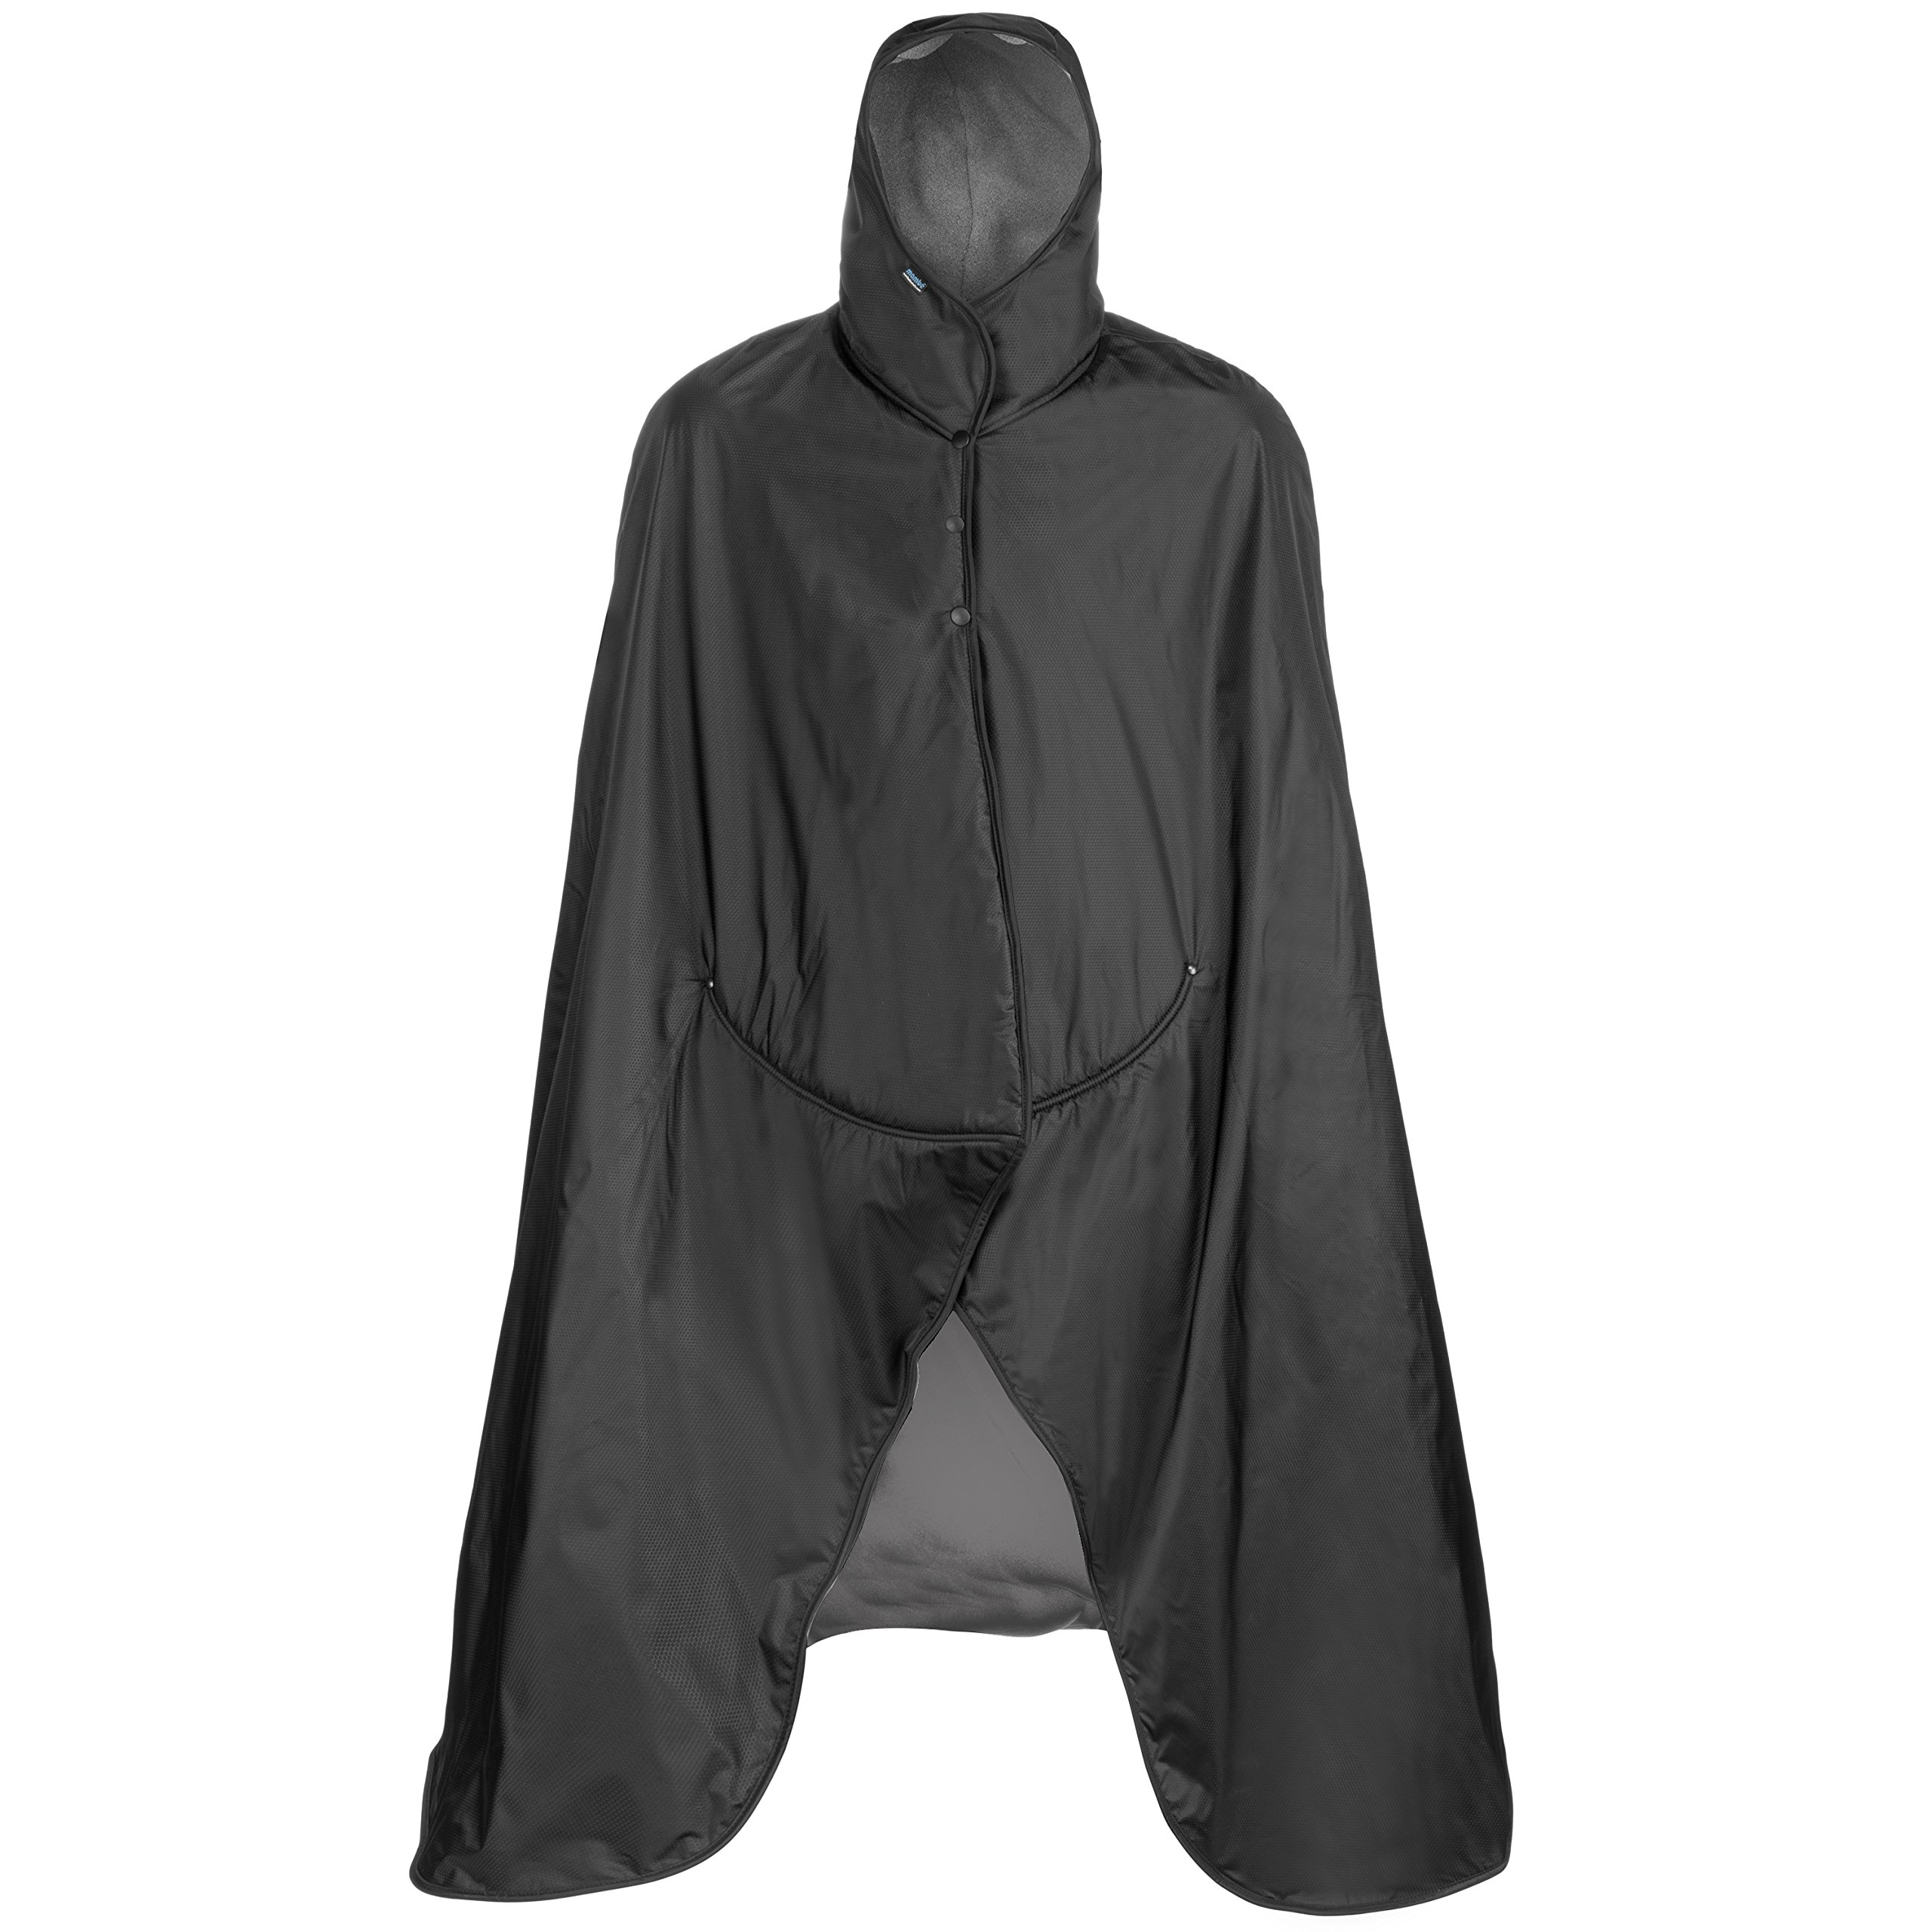 Mambe Extreme Weather 100% Waterproof/Windproof Hooded Blanket with Premium Stuff Sack (Size: Large, Charcoal) Made in The USA by Mambe